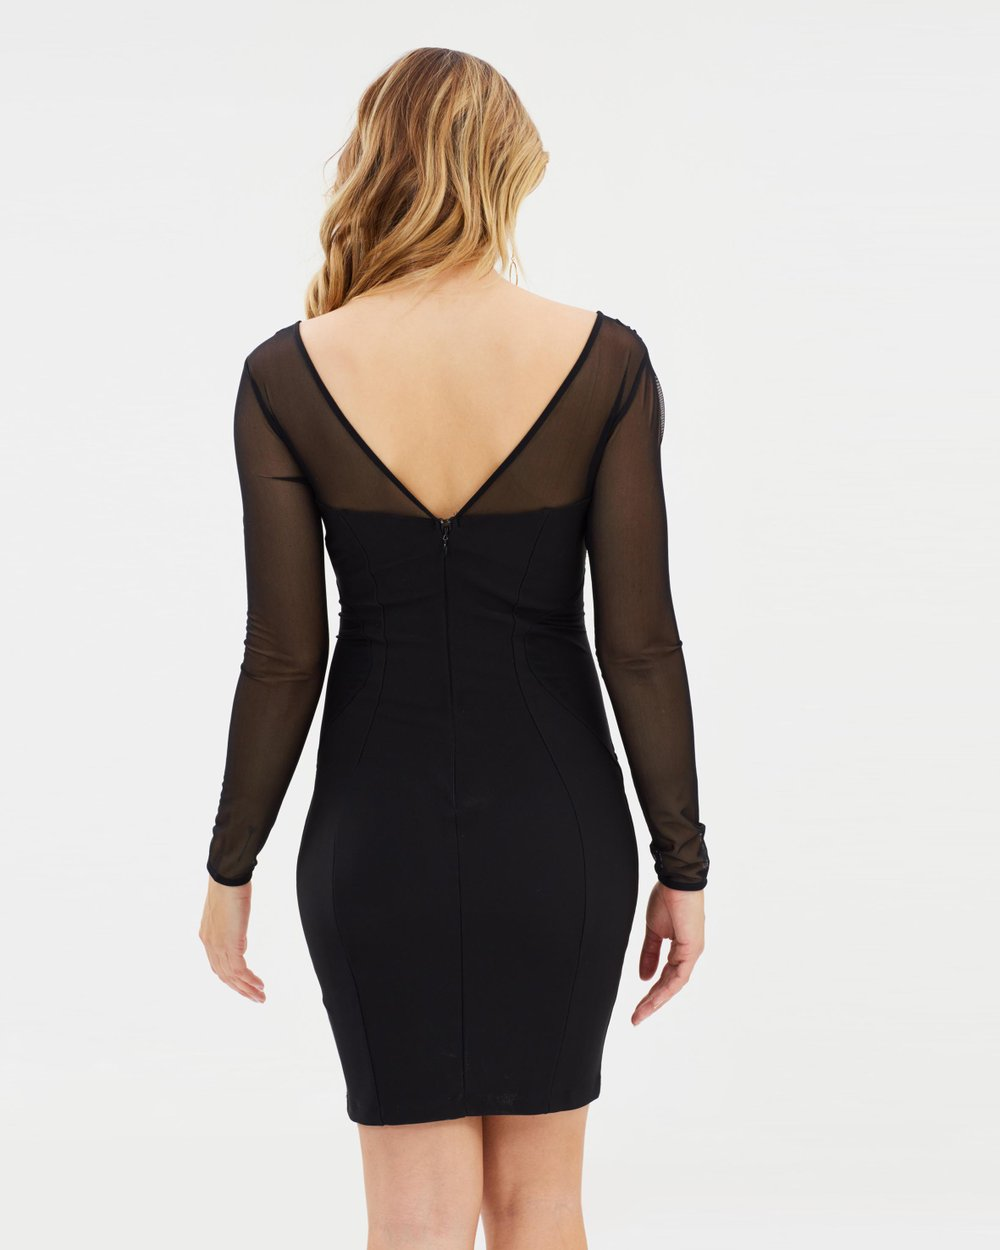 849804d1dc0d Lace Trim Long Sleeve Bodycon Dress by Lipsy Online